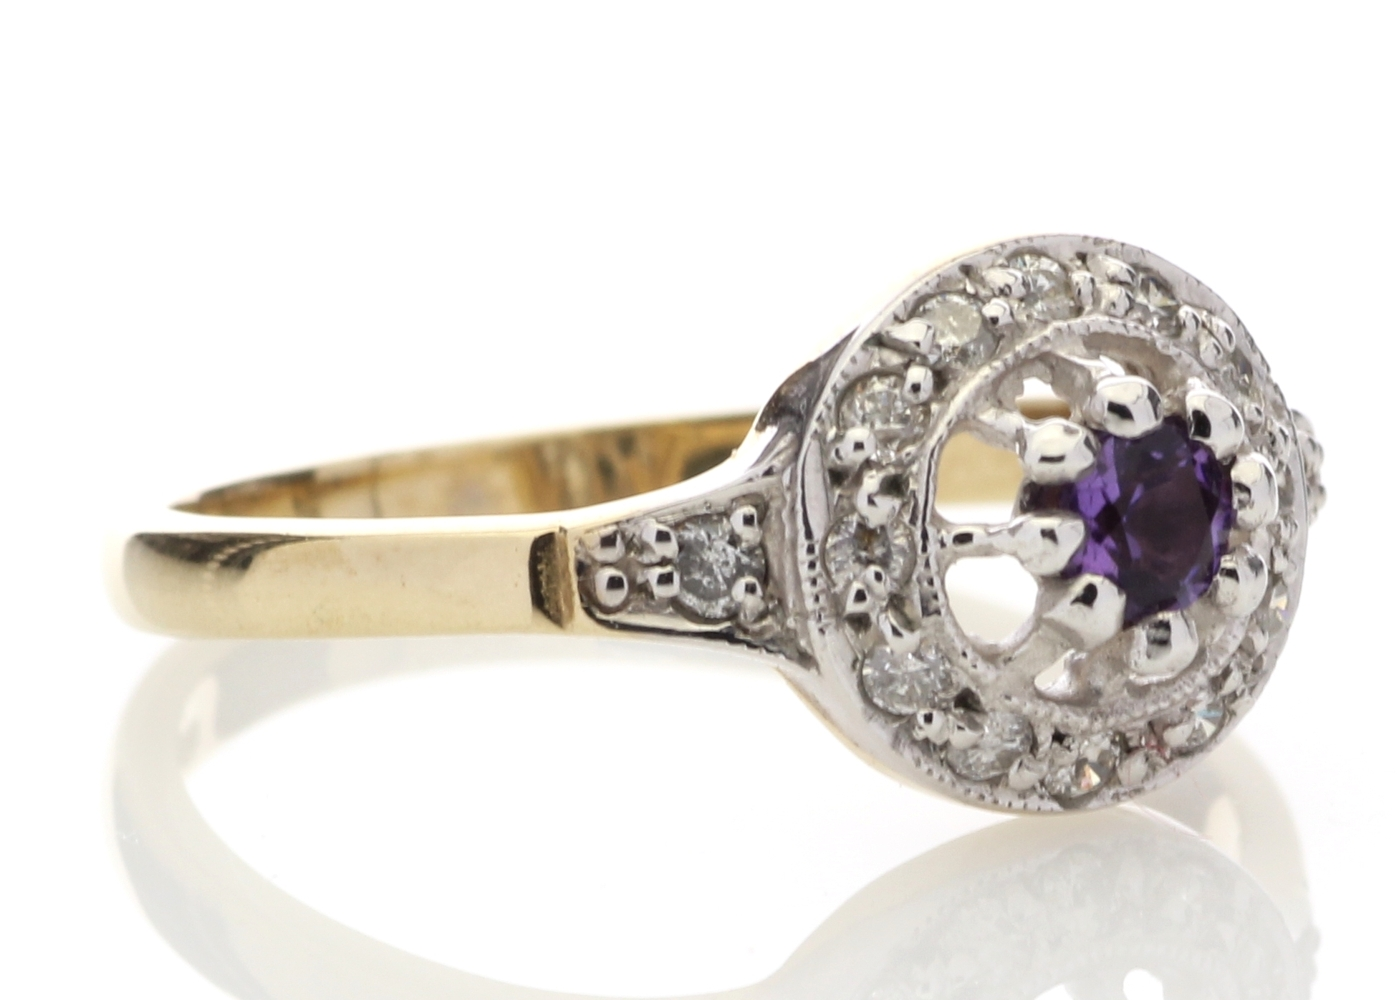 9ct Yellow Gold Round Cluster Claw Set Diamond Amethyst Ring 0.21 Carats - Image 4 of 4